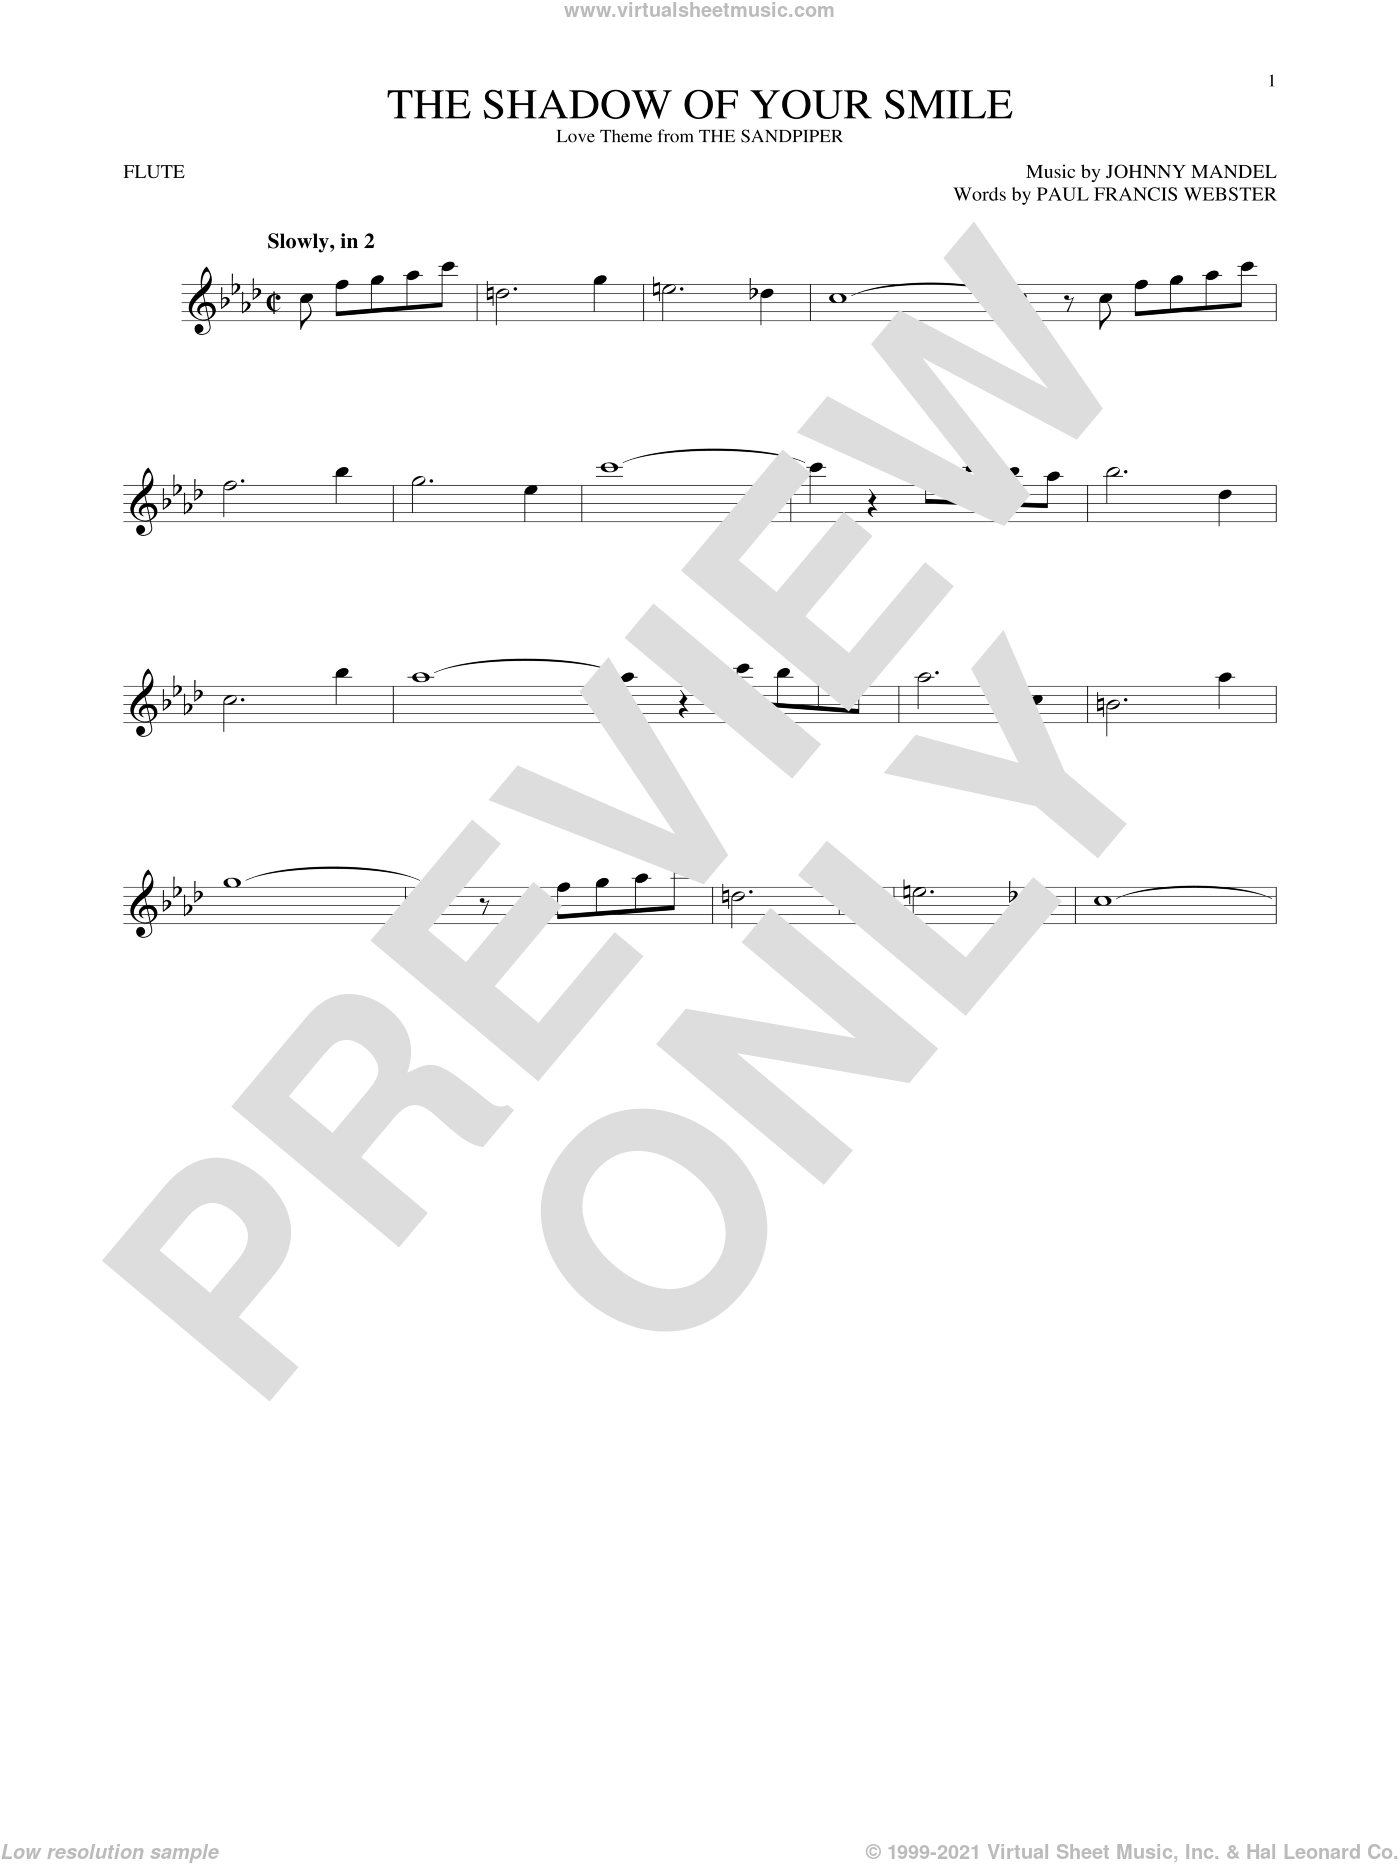 The Shadow Of Your Smile sheet music for flute solo by Paul Francis Webster and Johnny Mandel, intermediate skill level